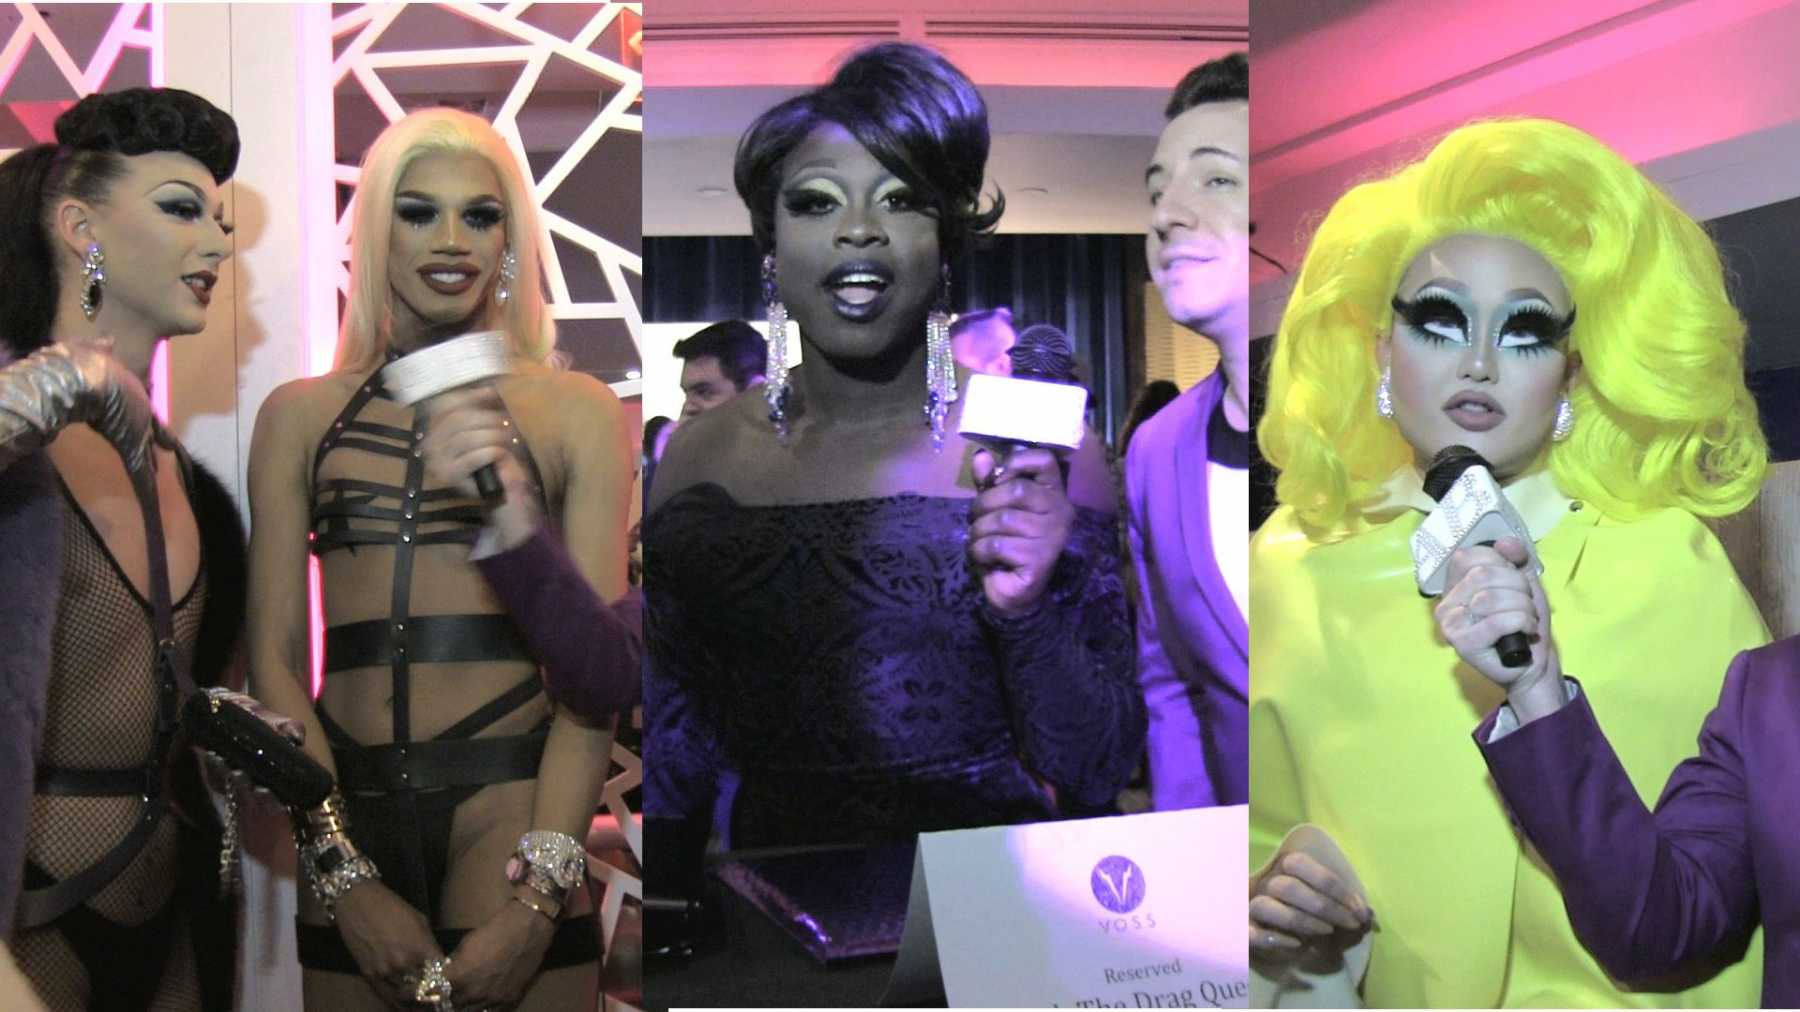 RuPaul's Drag Race Crowns New 'America's Next Drag Superstar' | RuPaul's Drag Race